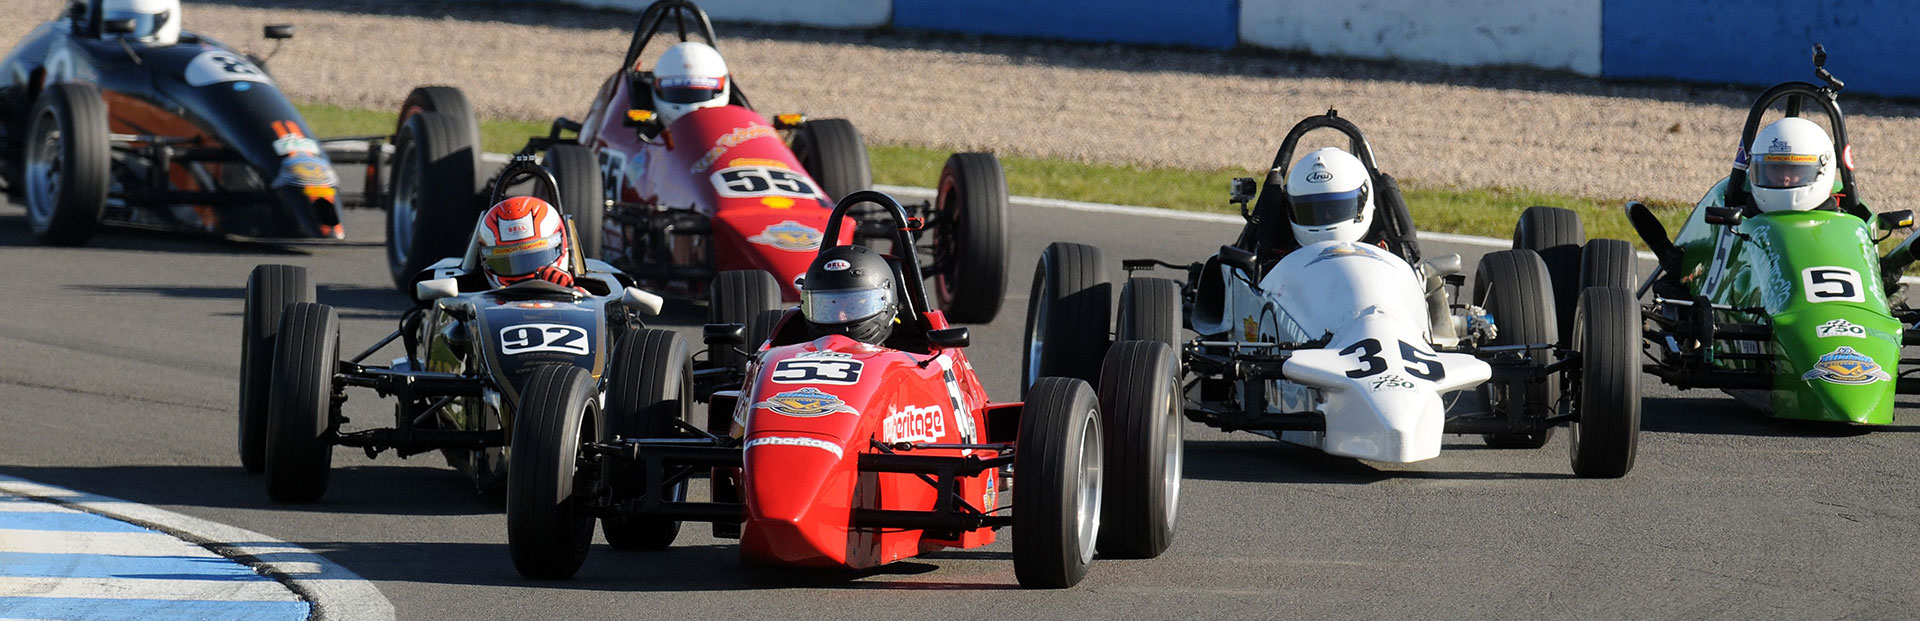 The UK's premier low cost single seater championship